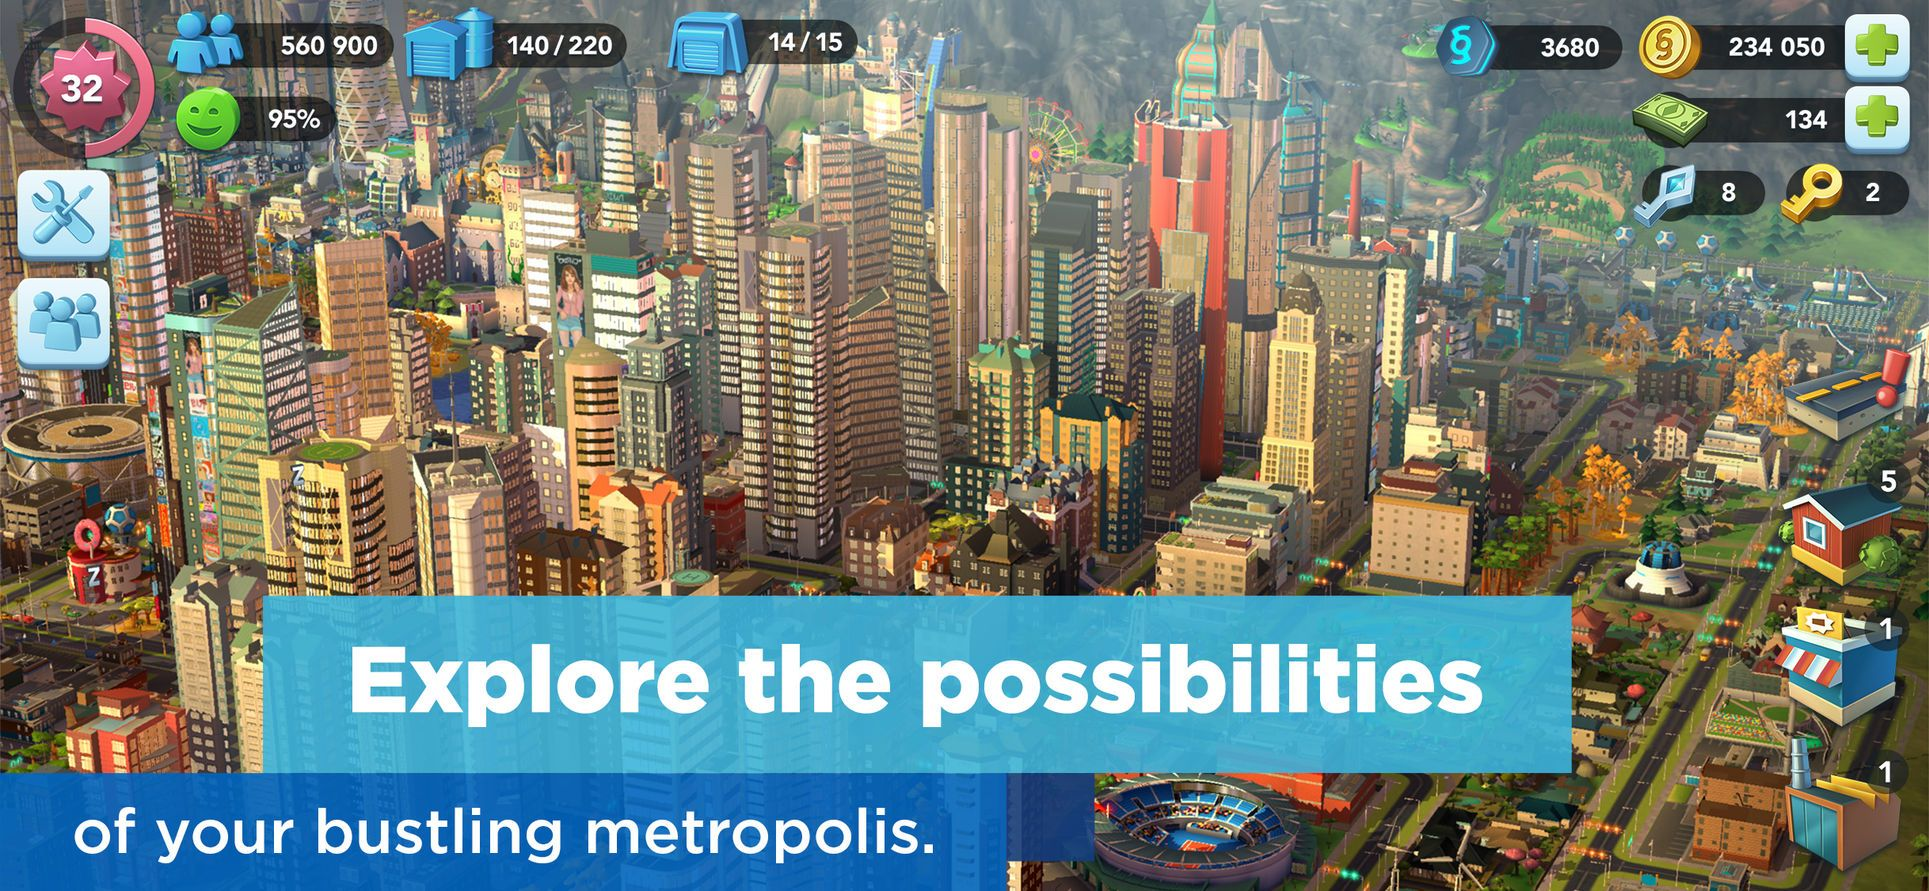 what is simcity supposed to simulate